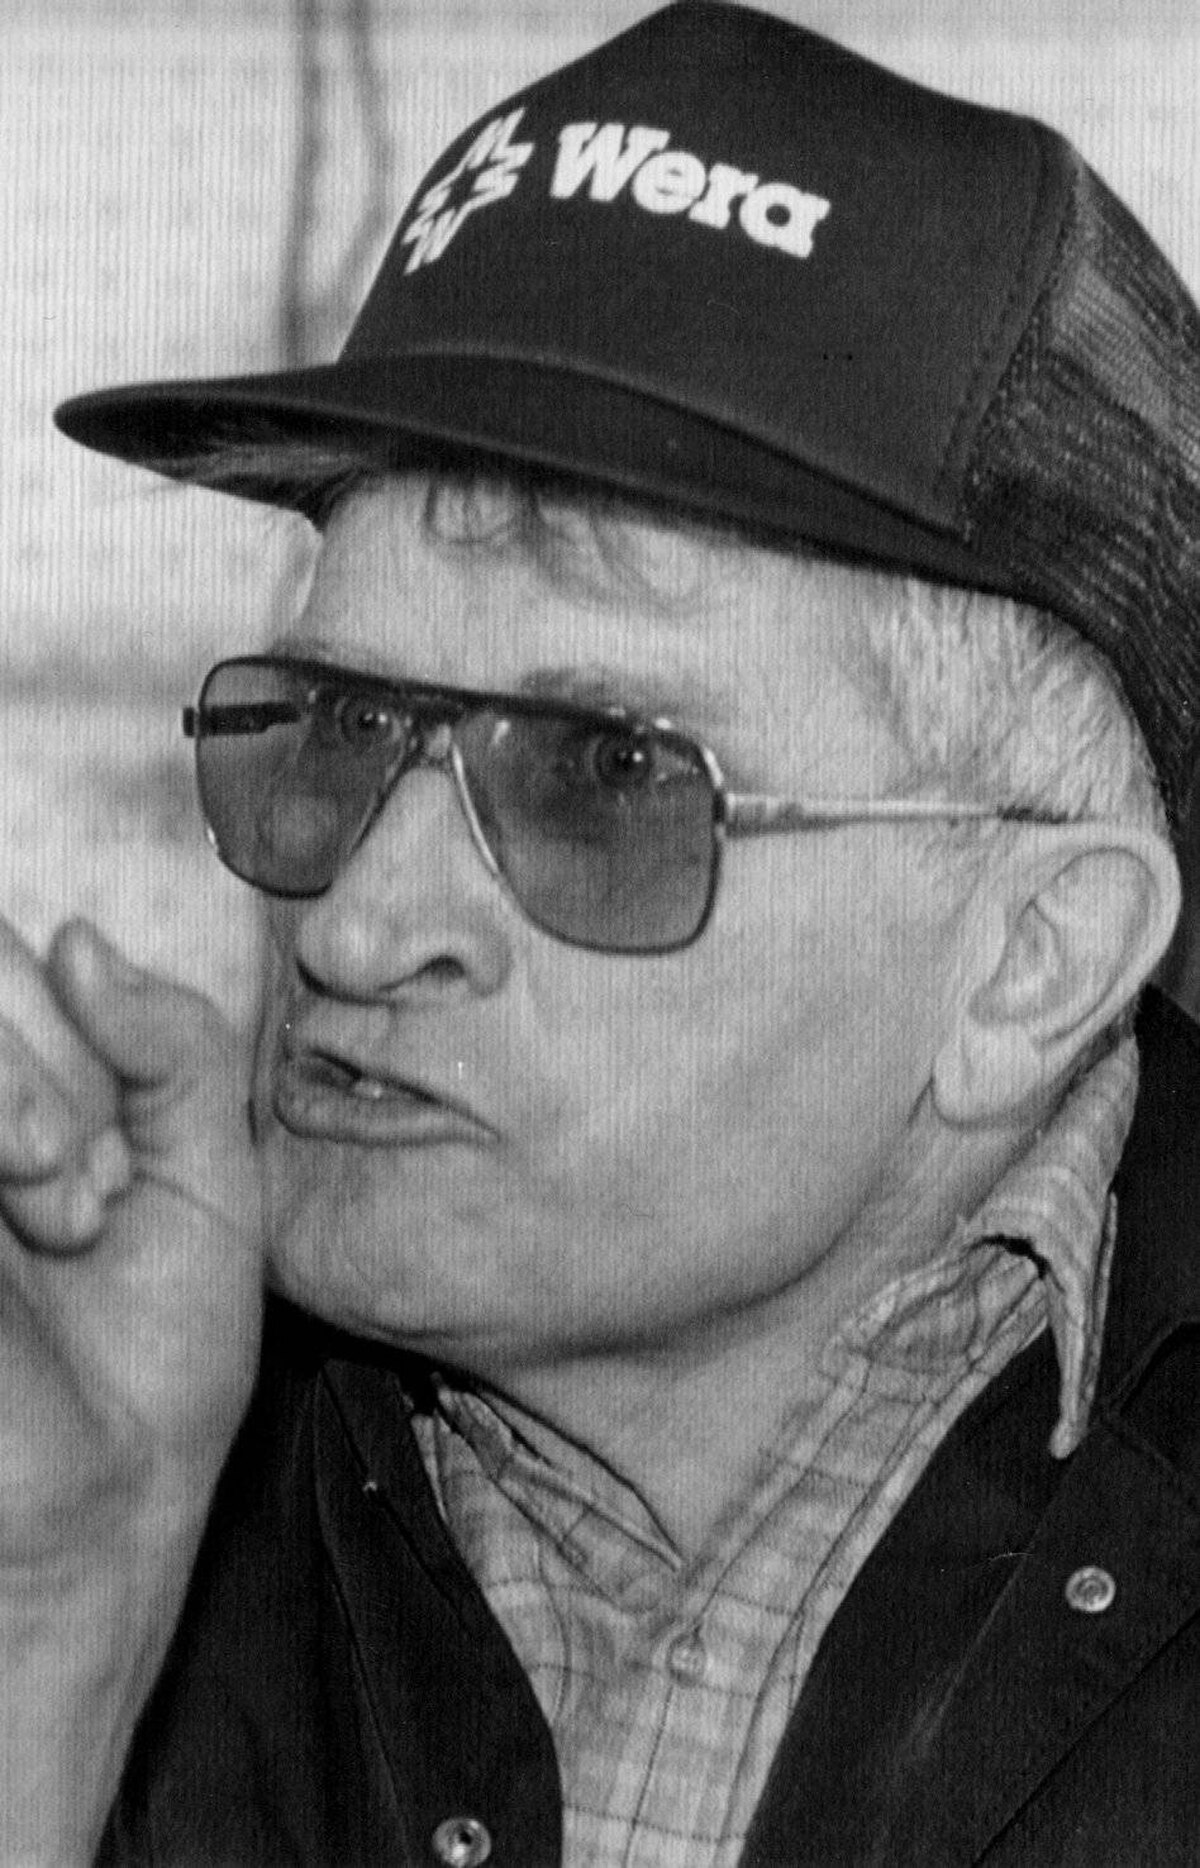 R v. KEEGSTRA, 1990 The accused was charged with willfully promoting hatred against an identifiable group by communicating anti-Semitic statements to his students. The court upheld the validity of the offence on the basis that there is a rational connection between prohibiting hate propaganda and fostering multiculturalism.